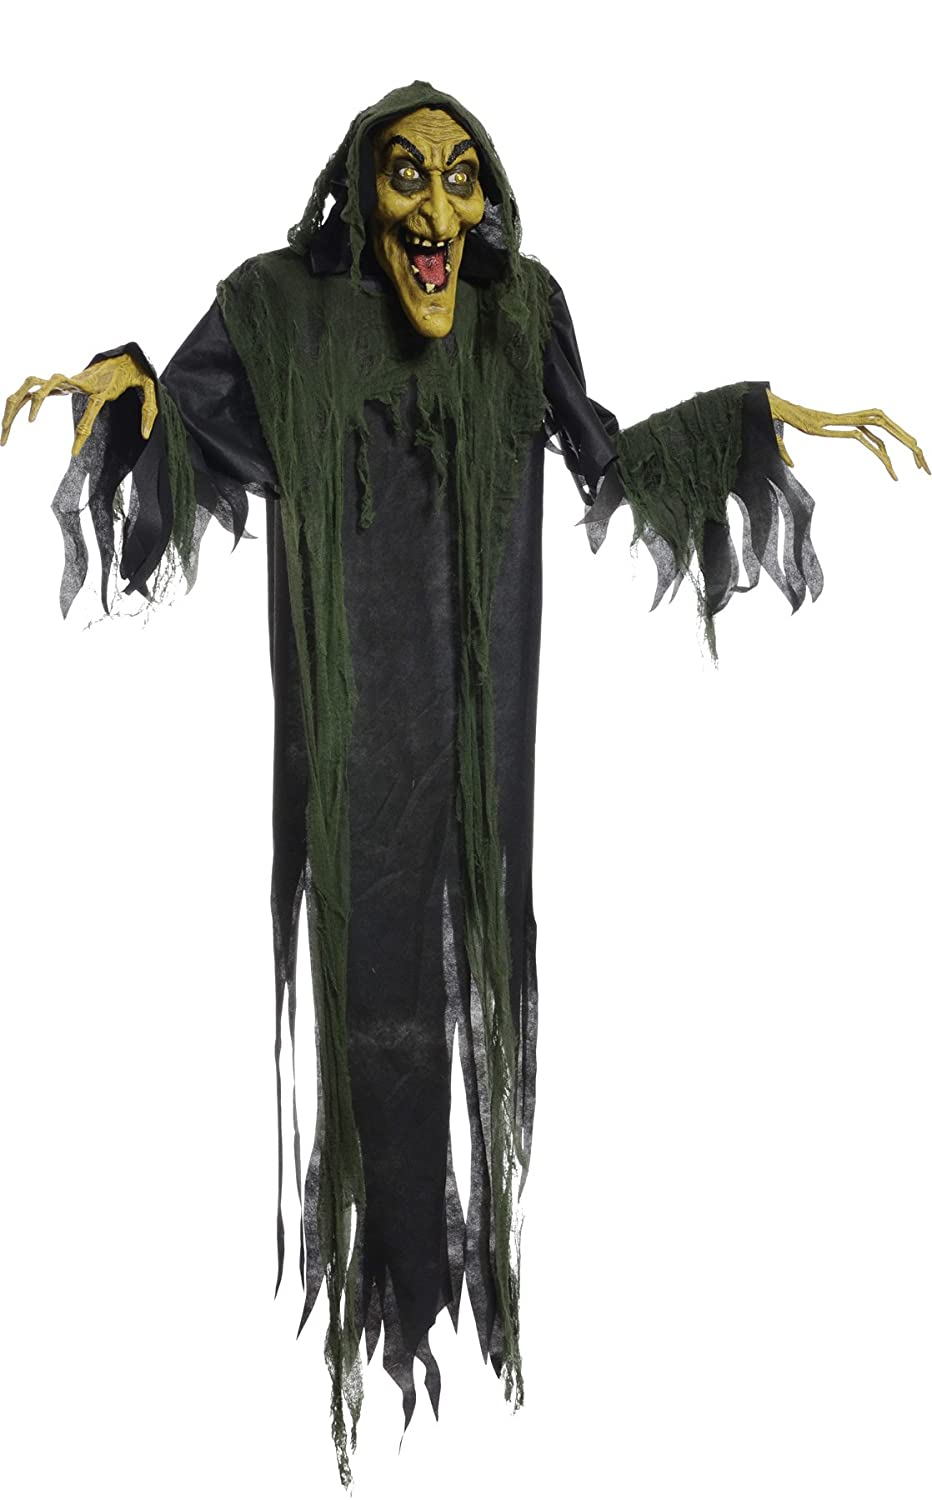 amazoncom hanging witch 72 inches animated halloween prop haunted house yard scary decor by mario chiodo toys games - Halloween Hanging Decorations